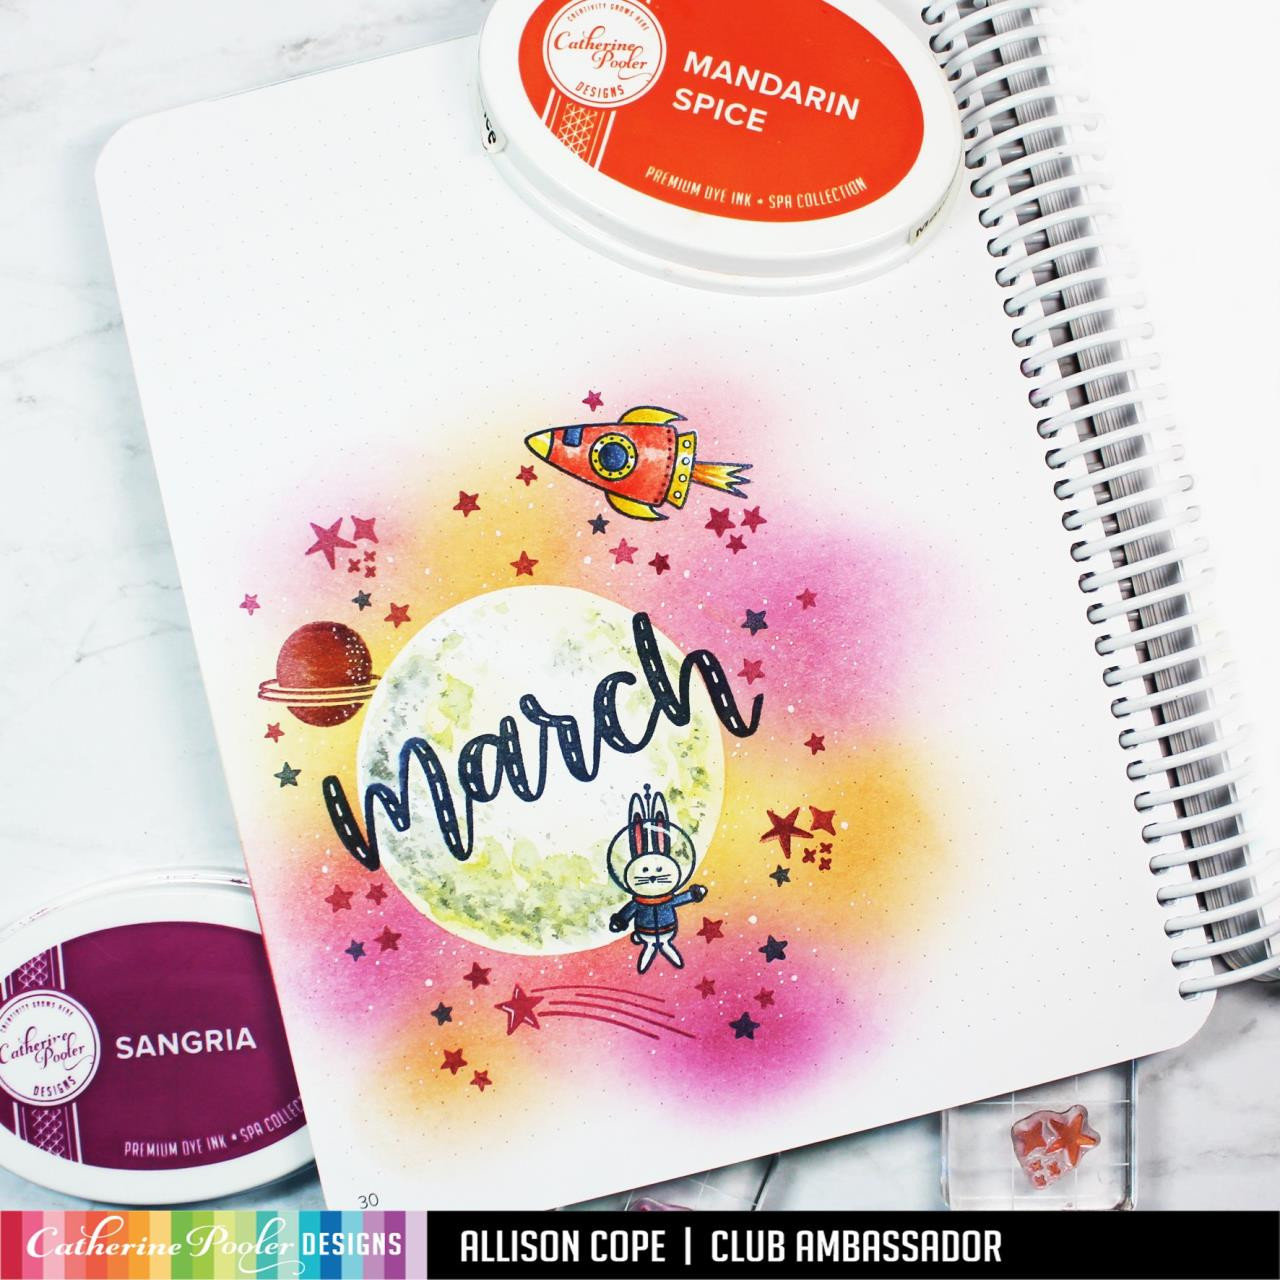 Weekly Two, Catherine Pooler Stencils - 819447026487